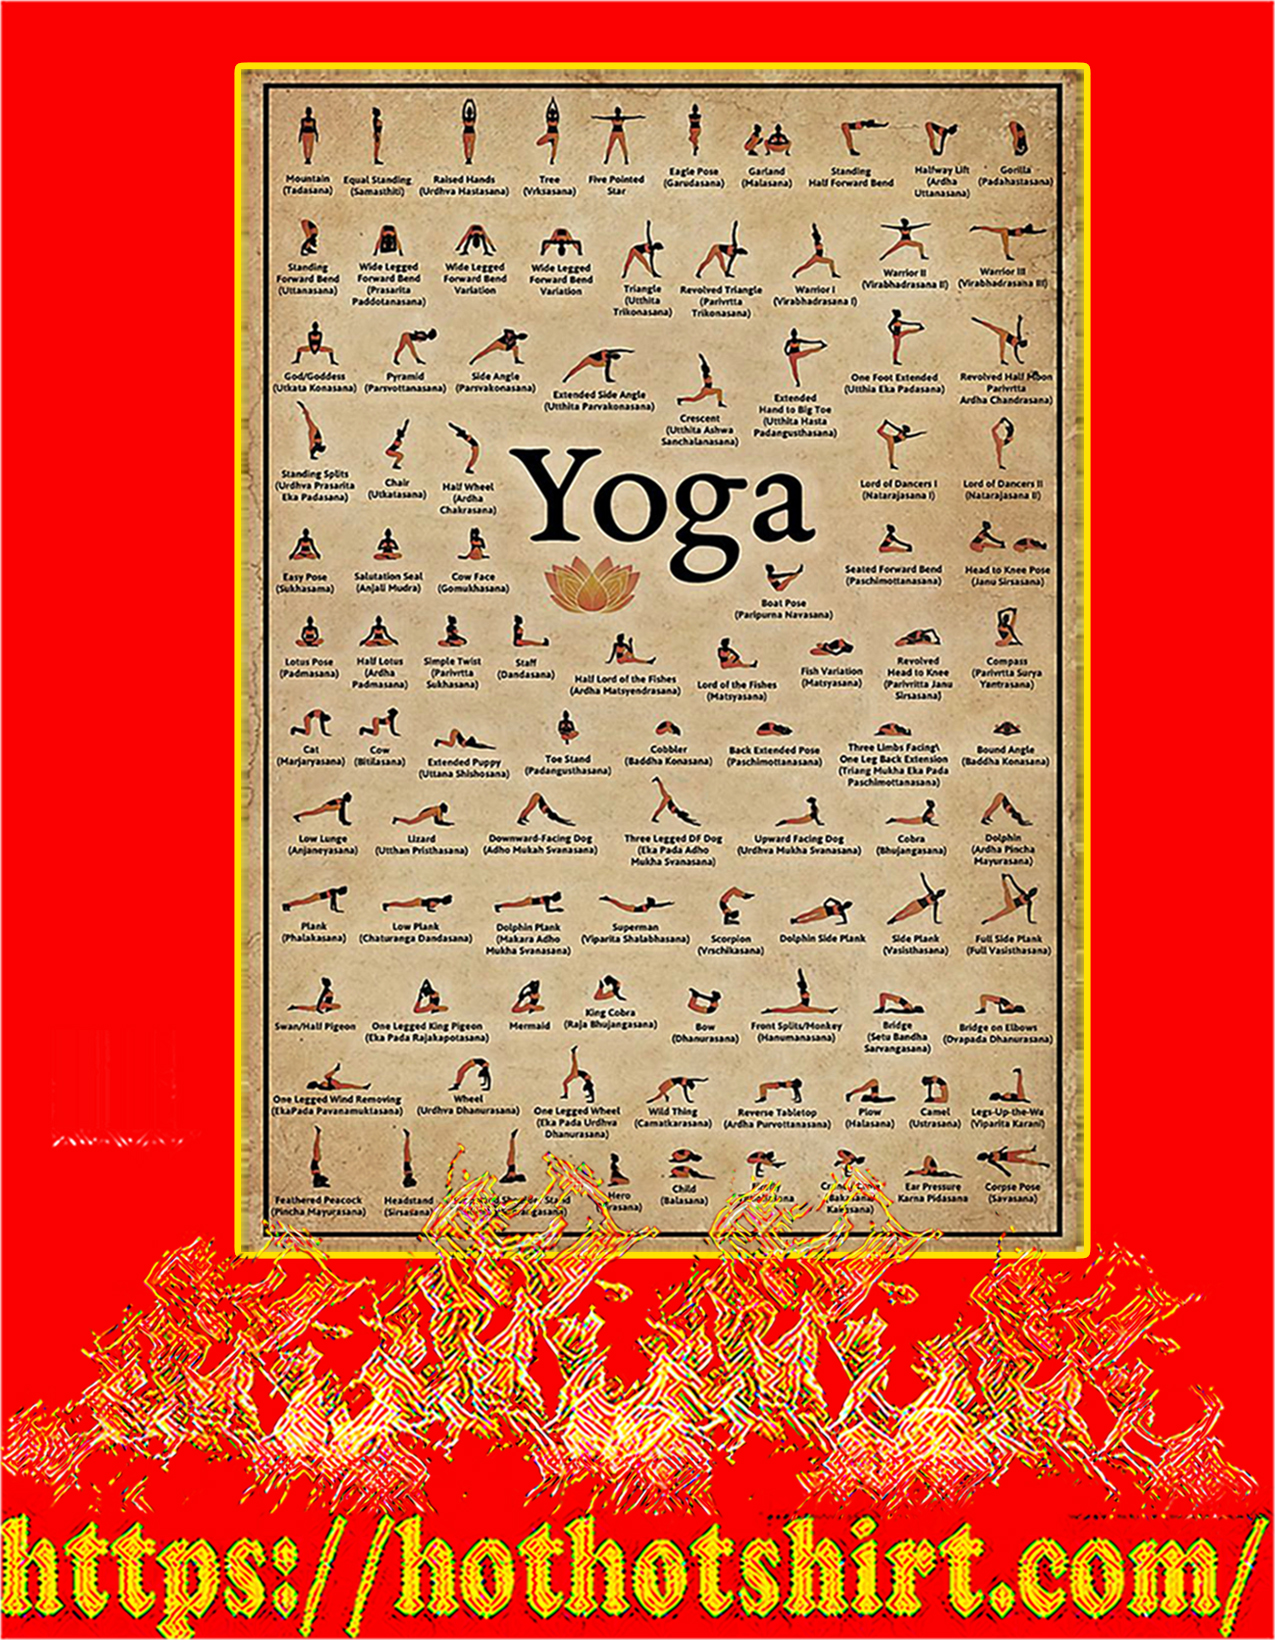 Yoga poses poster - A2